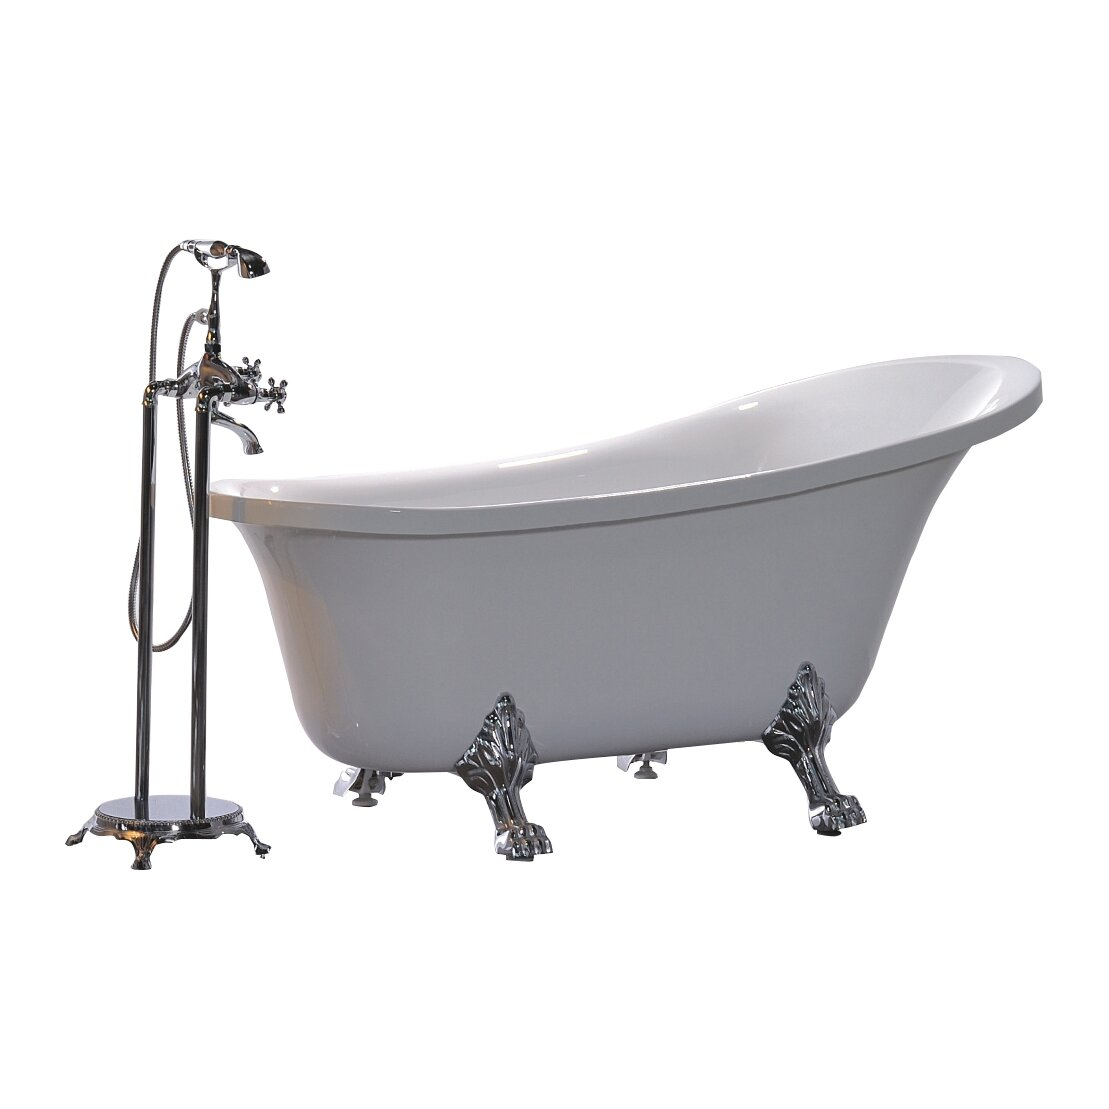 "Legion Furniture King 69"" X 30"" Soaking Bathtub & Reviews. Toto Sink. Bathroom Medicine Cabinets With Mirrors. Fold Out Ironing Board. Master Bathroom Design Ideas. Lowes Valencia. Beds Without Headboards. Blinds.com. Single Bathroom Vanity"